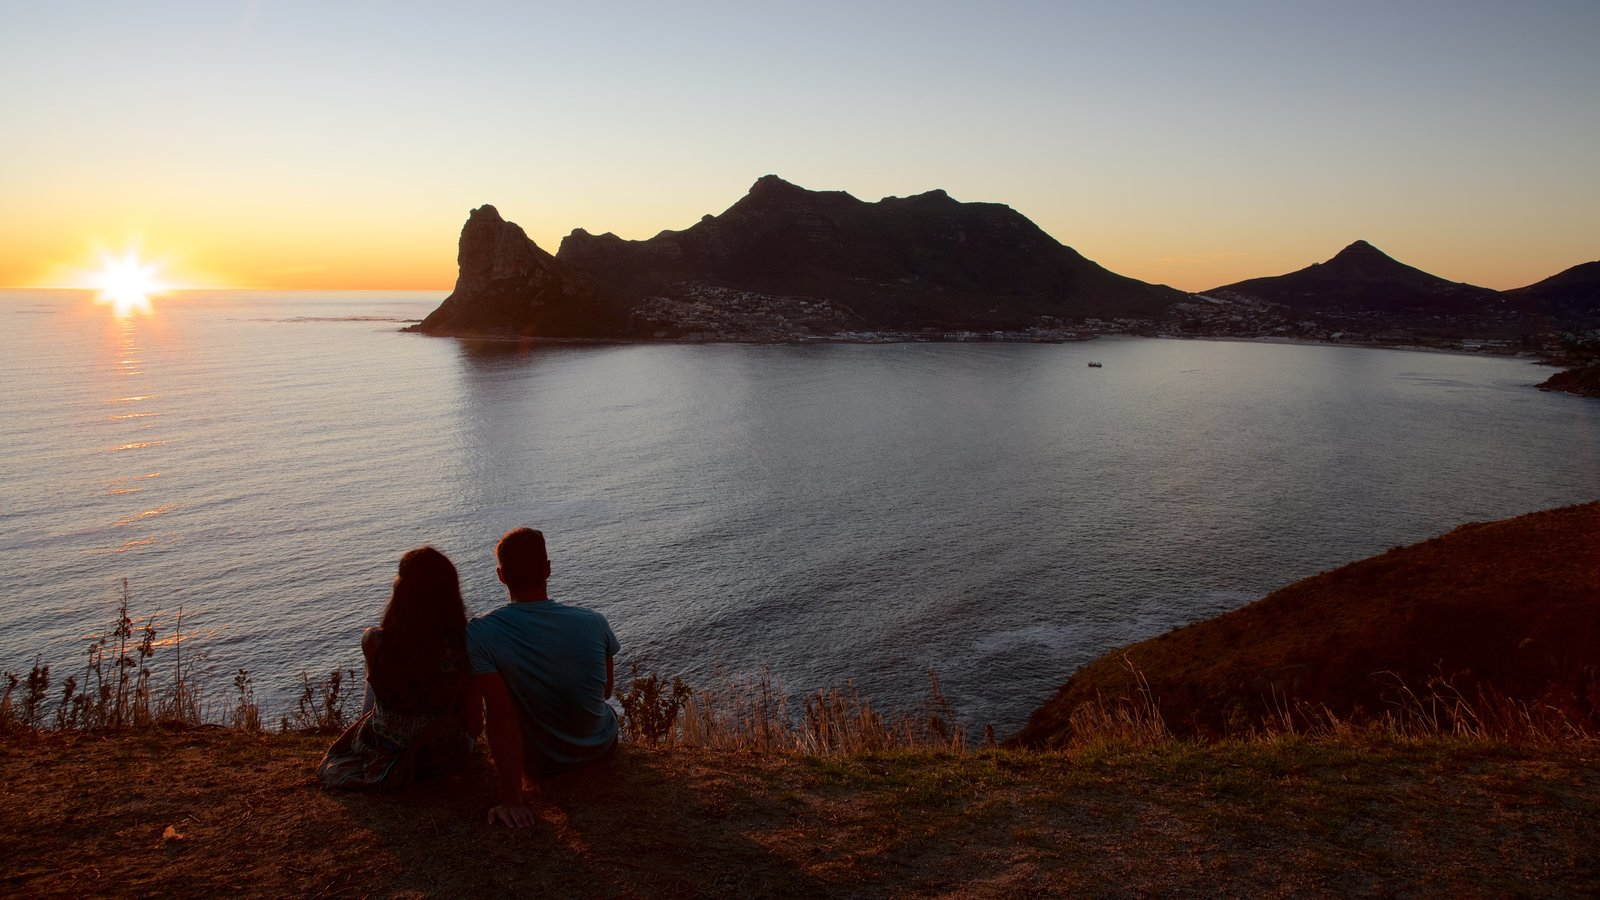 Chapmans Peak showing rugged coastline and a sunset as well as a couple